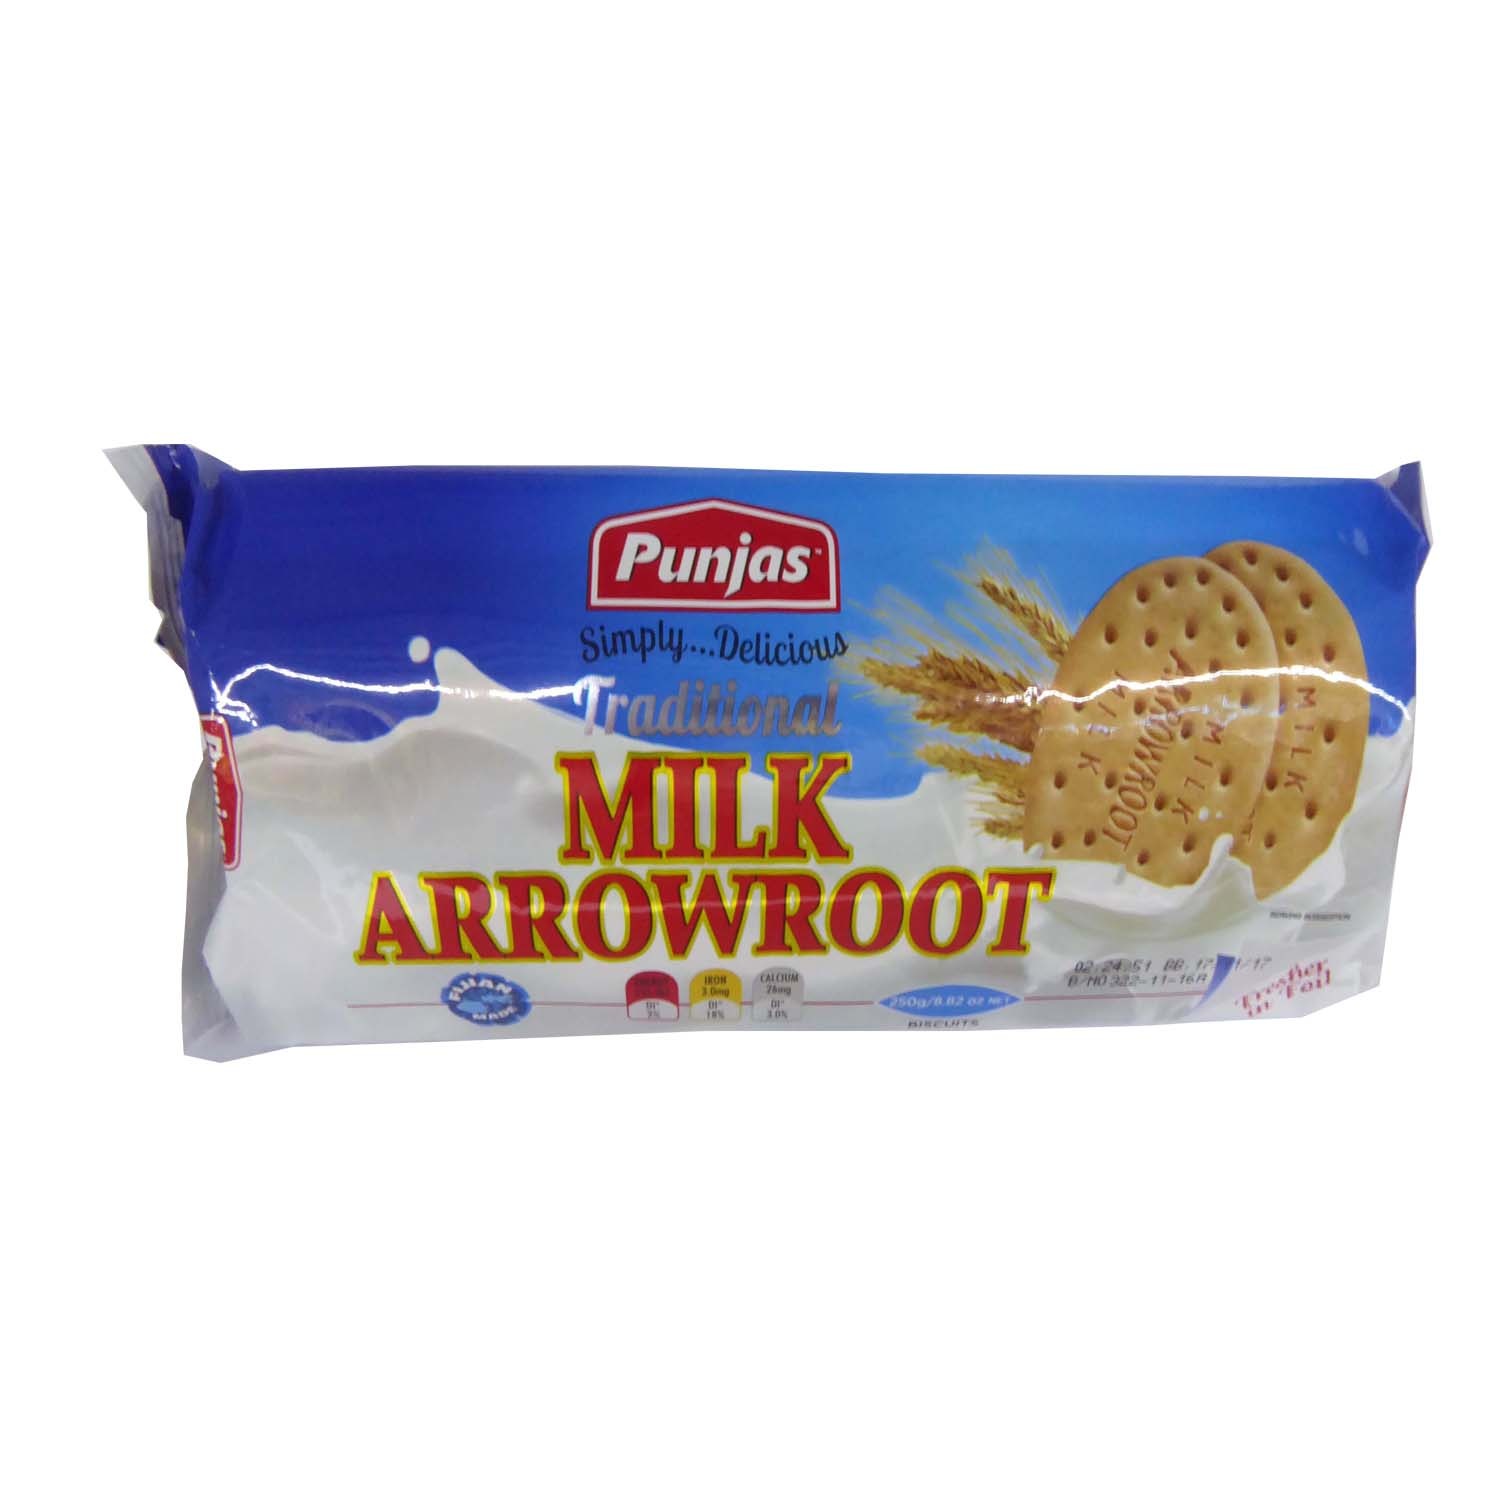 Punjas Milk Arrowroot Biscuit 250g